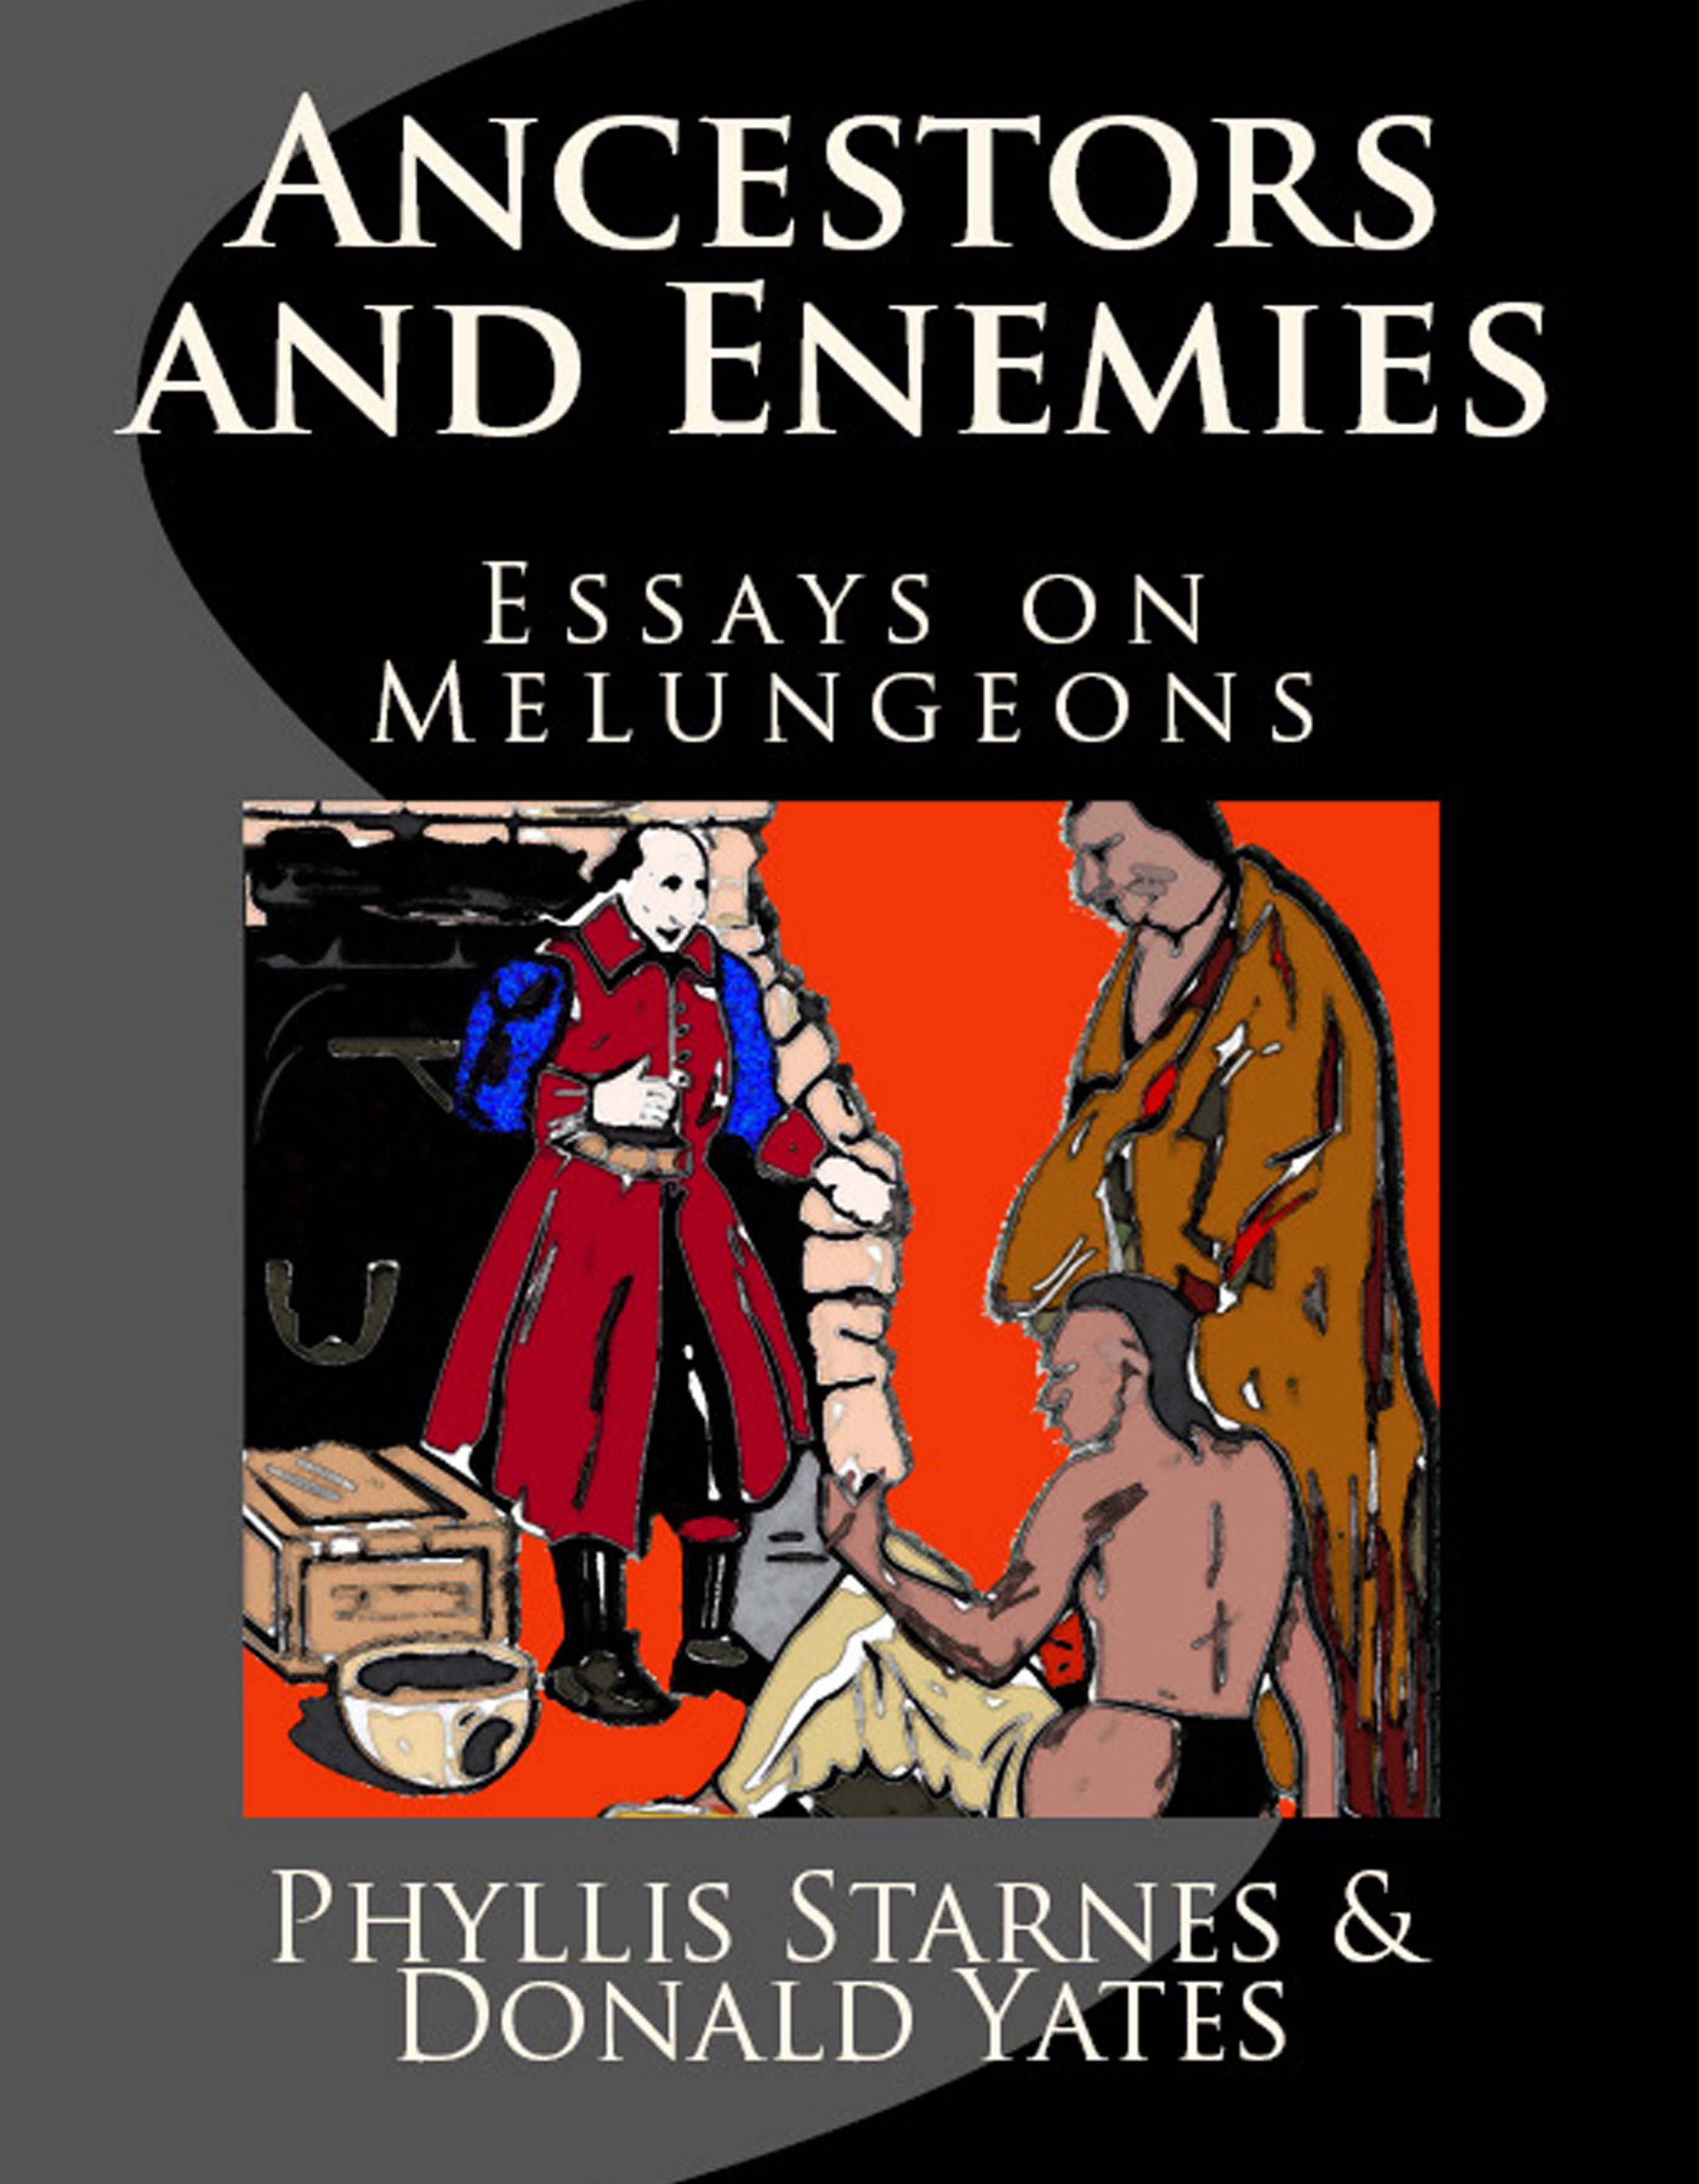 history of the melungeons essay Ancestors and enemies: essays on melungeons the secret history of the cherokee indians as the twentieth century was ending and.